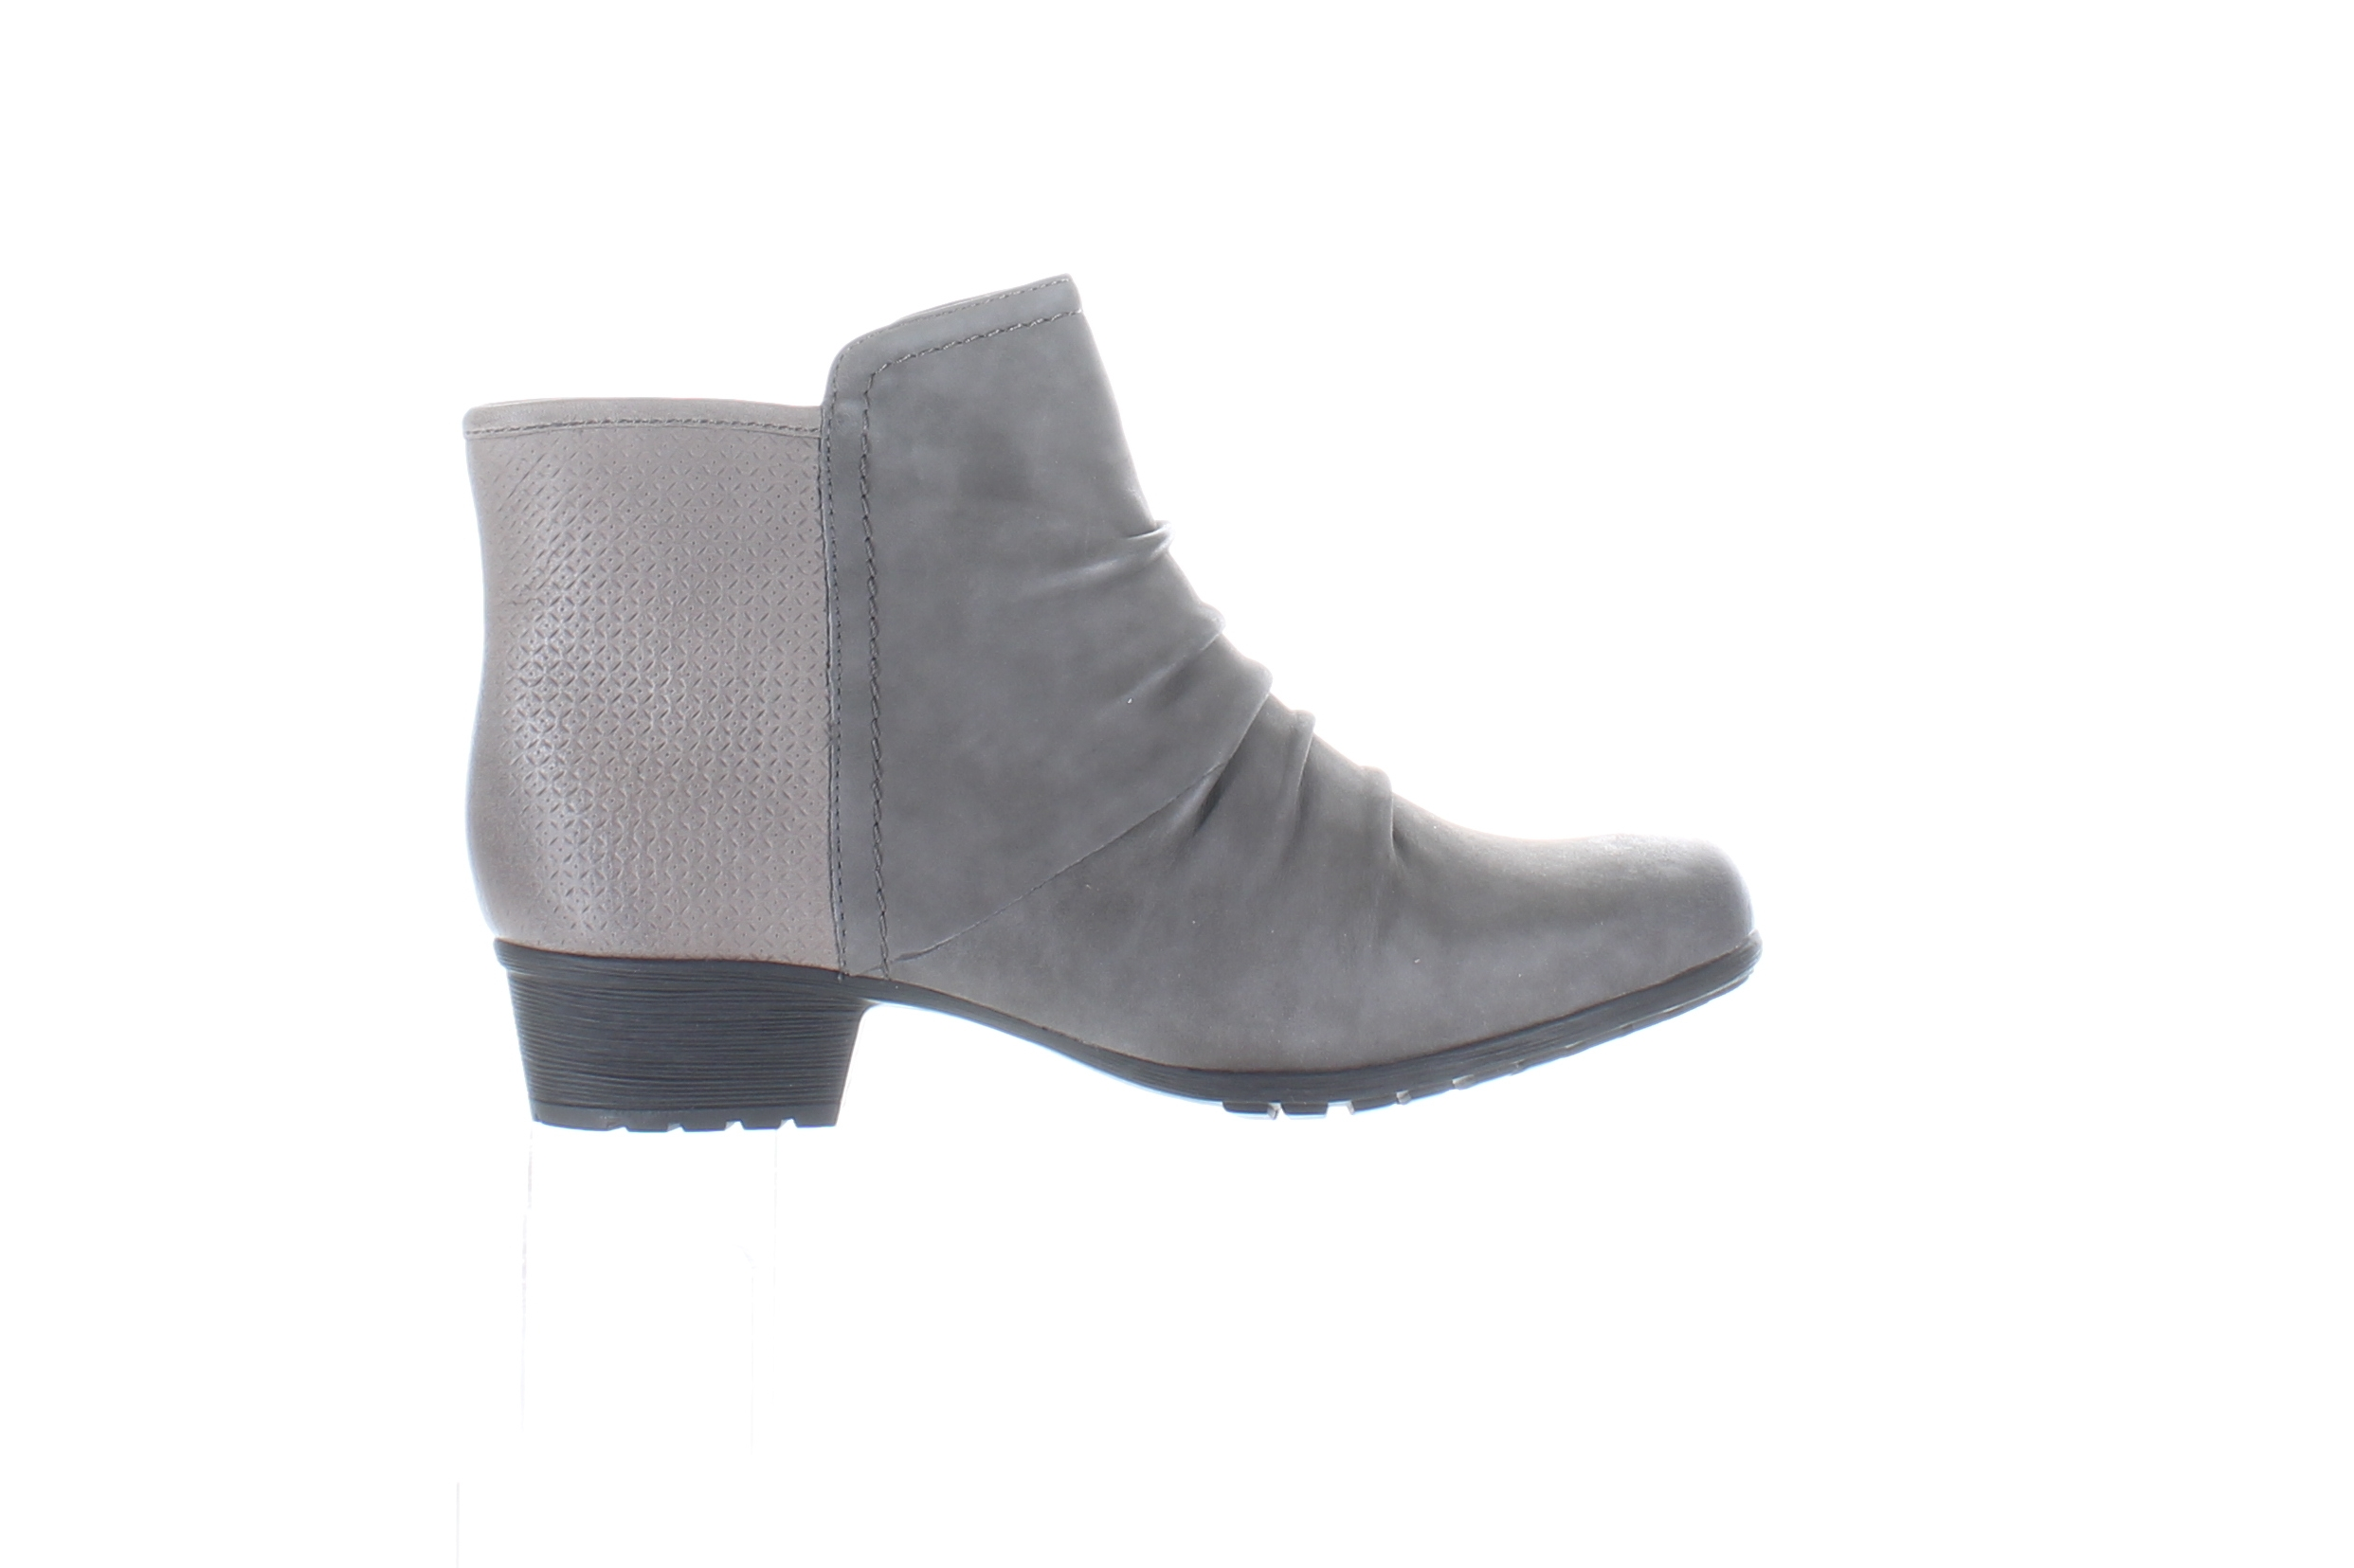 Cobb Hill Womens Gratasha Gray Ankle Boots Size 6 (Wide) (1717561)